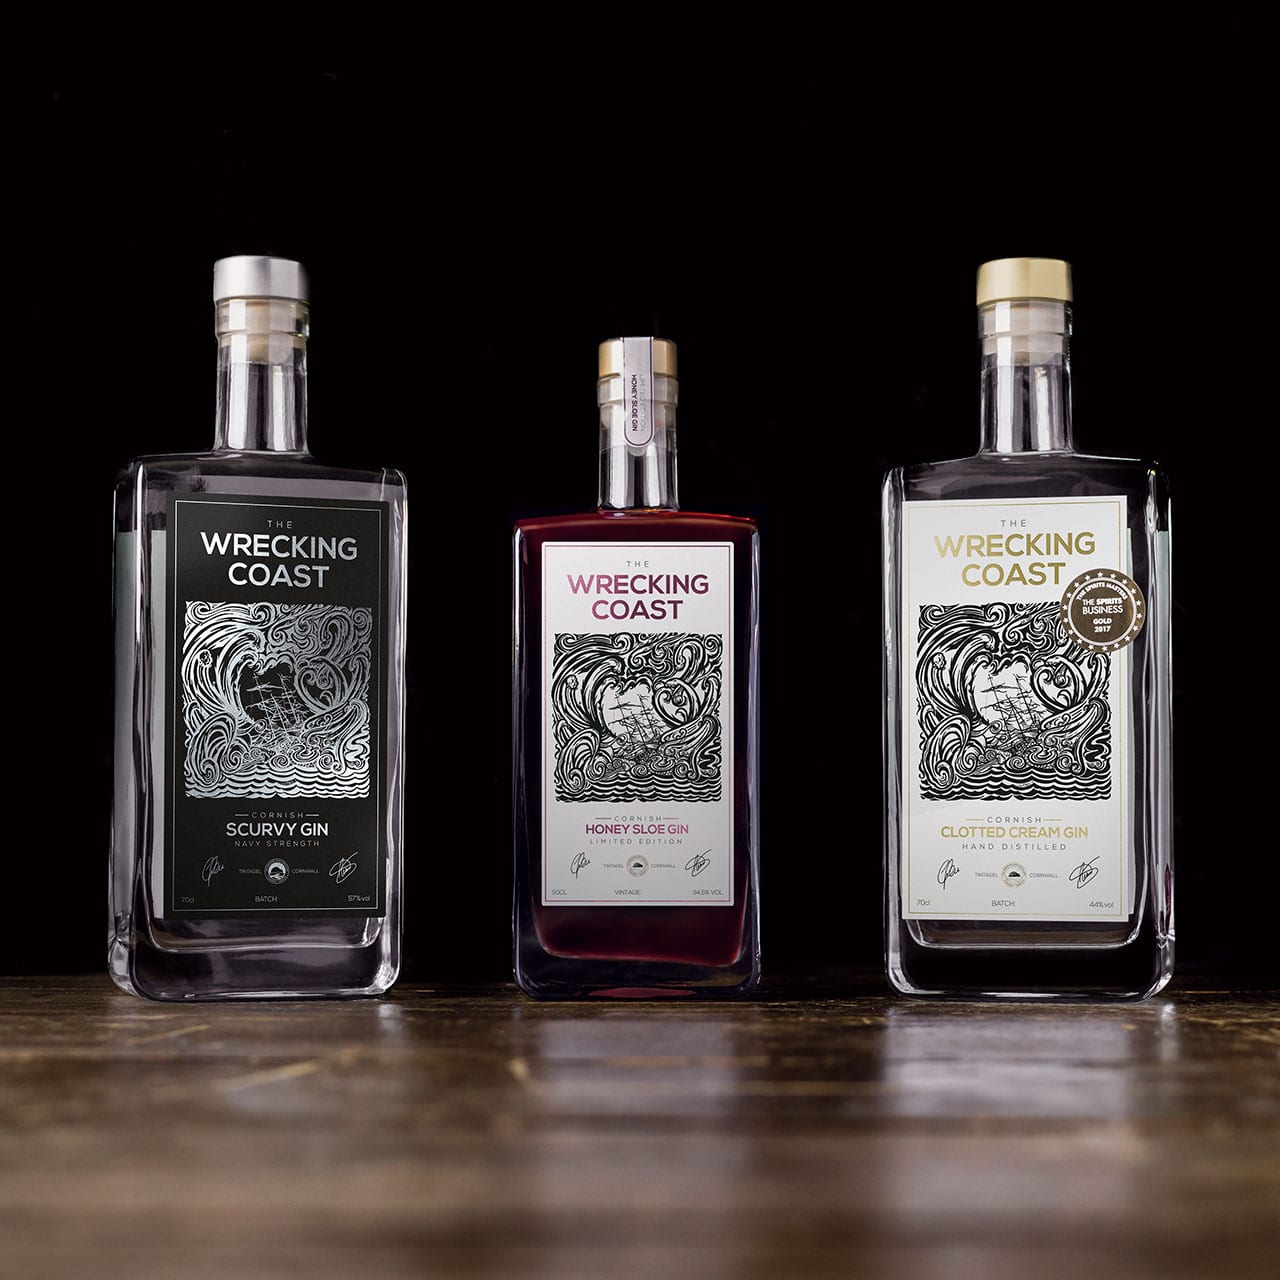 The Wrecking Coast Distillery Scurvy gin, Cornish Clotted Cream gin and Honey Sloe gin bottles, photographed on a wooden surface with a black background